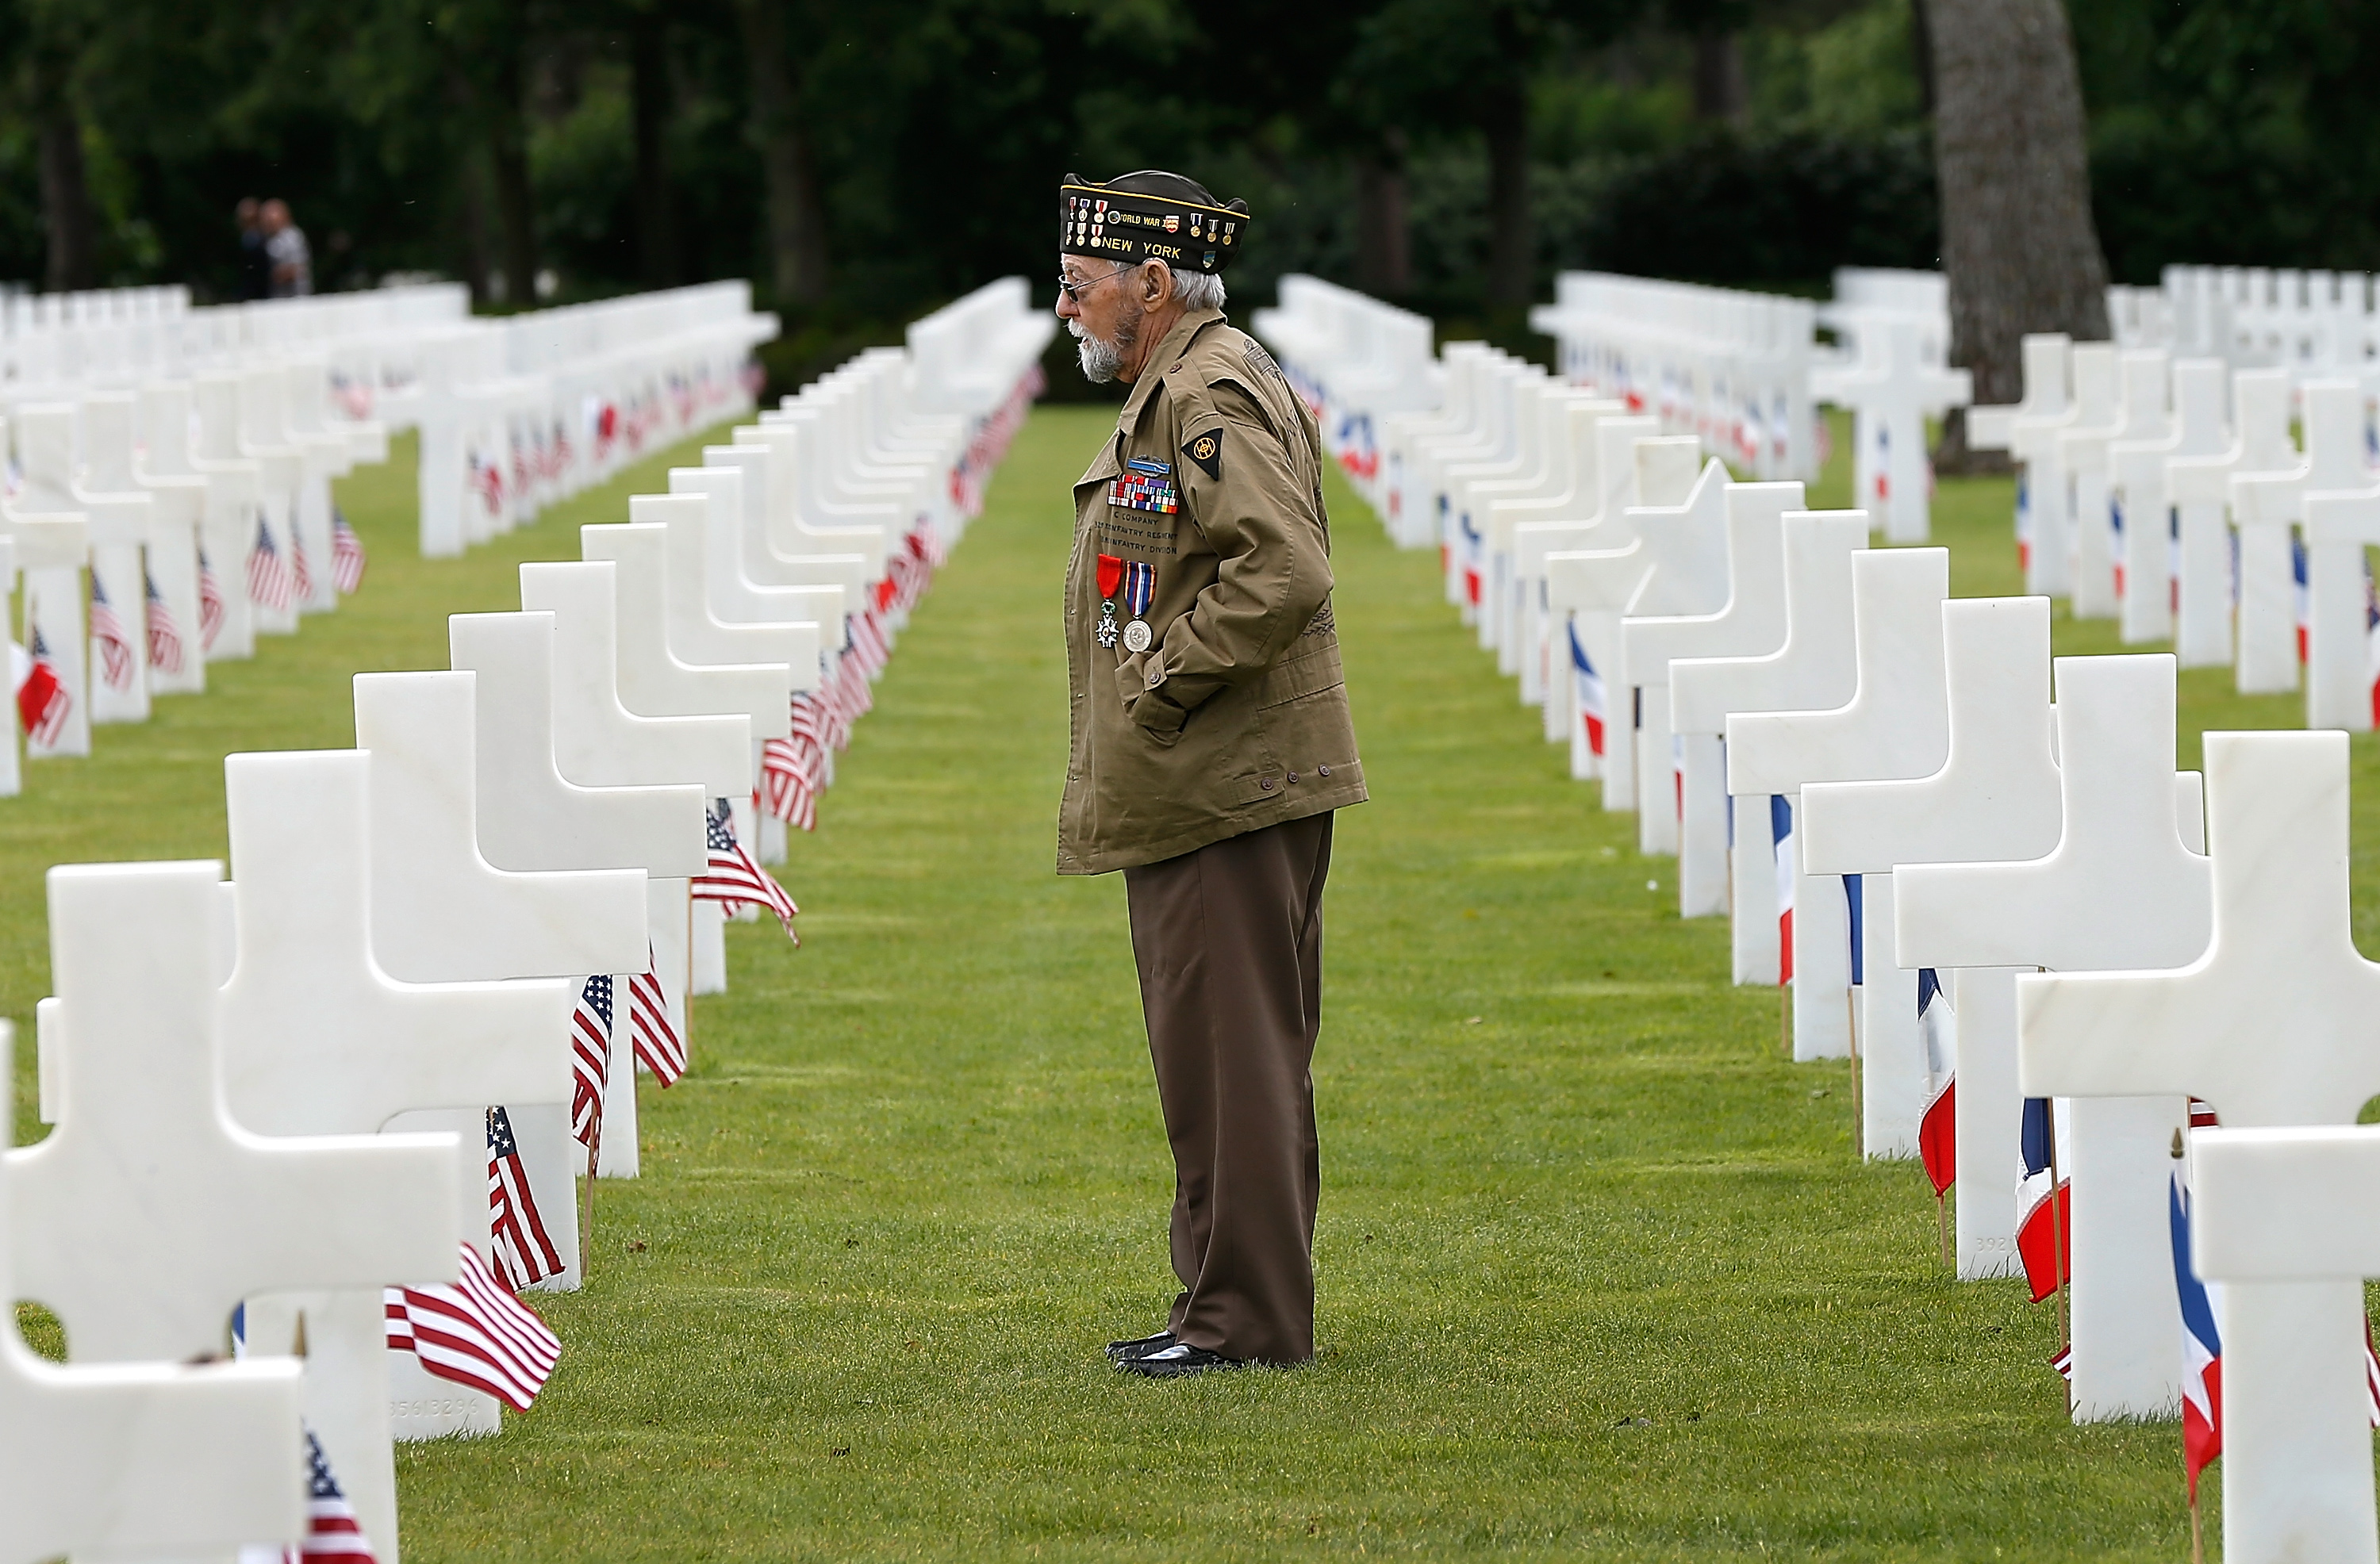 an analysis of america at d day of remembrance at the end of world war two On this 73rd anniversary of the june 6, 1944, d-day invasion of france during world war ii, timothy kalil, of ashtabula, remembers the stories his late uncle, army sgt michael paulchel, told about that battle and the war.